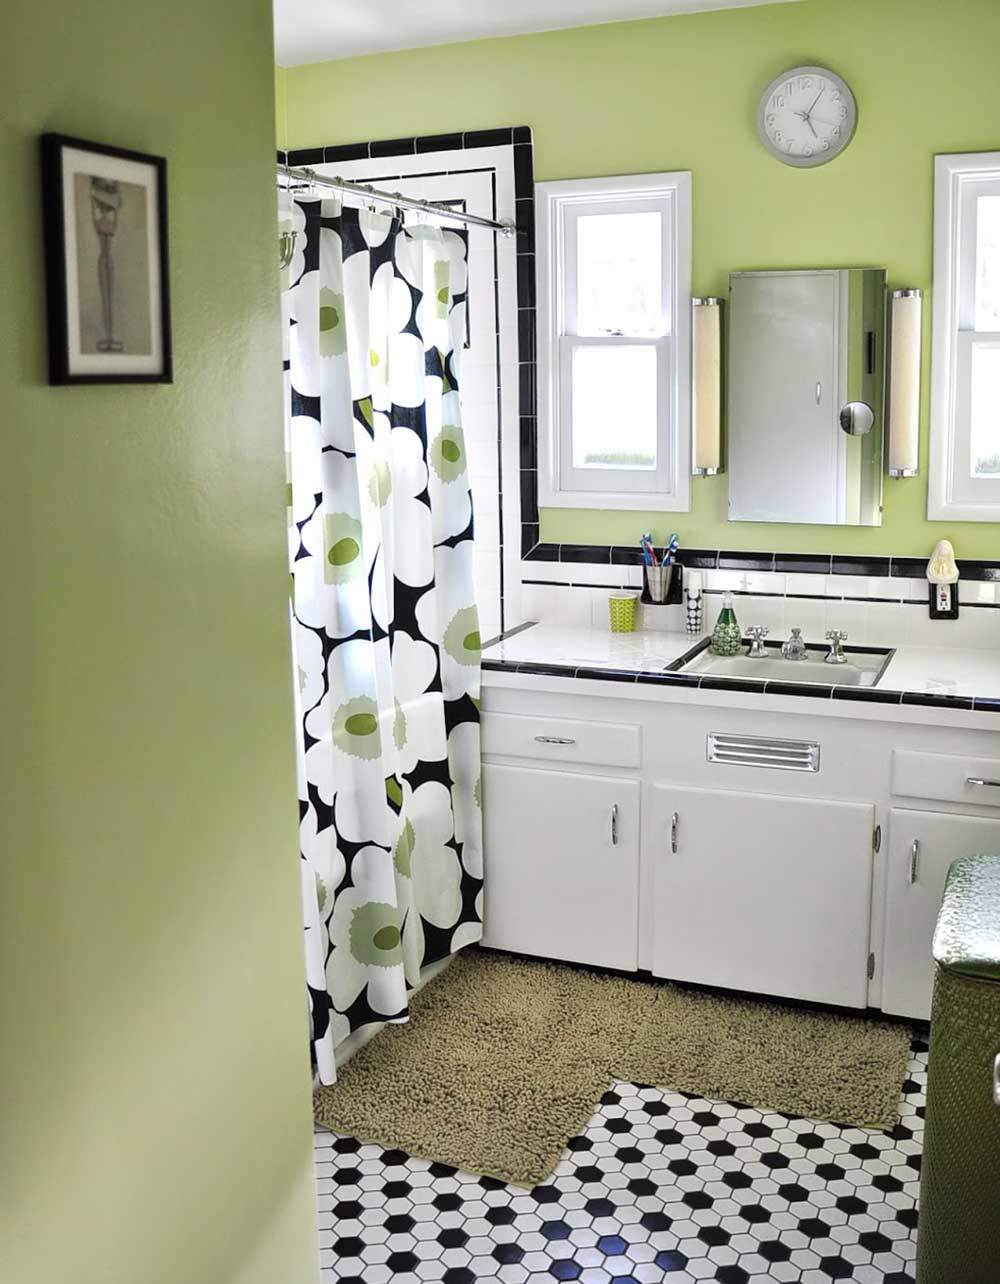 Bathroom Tiles Black And White black and white tile bathrooms - done 6 different ways - retro